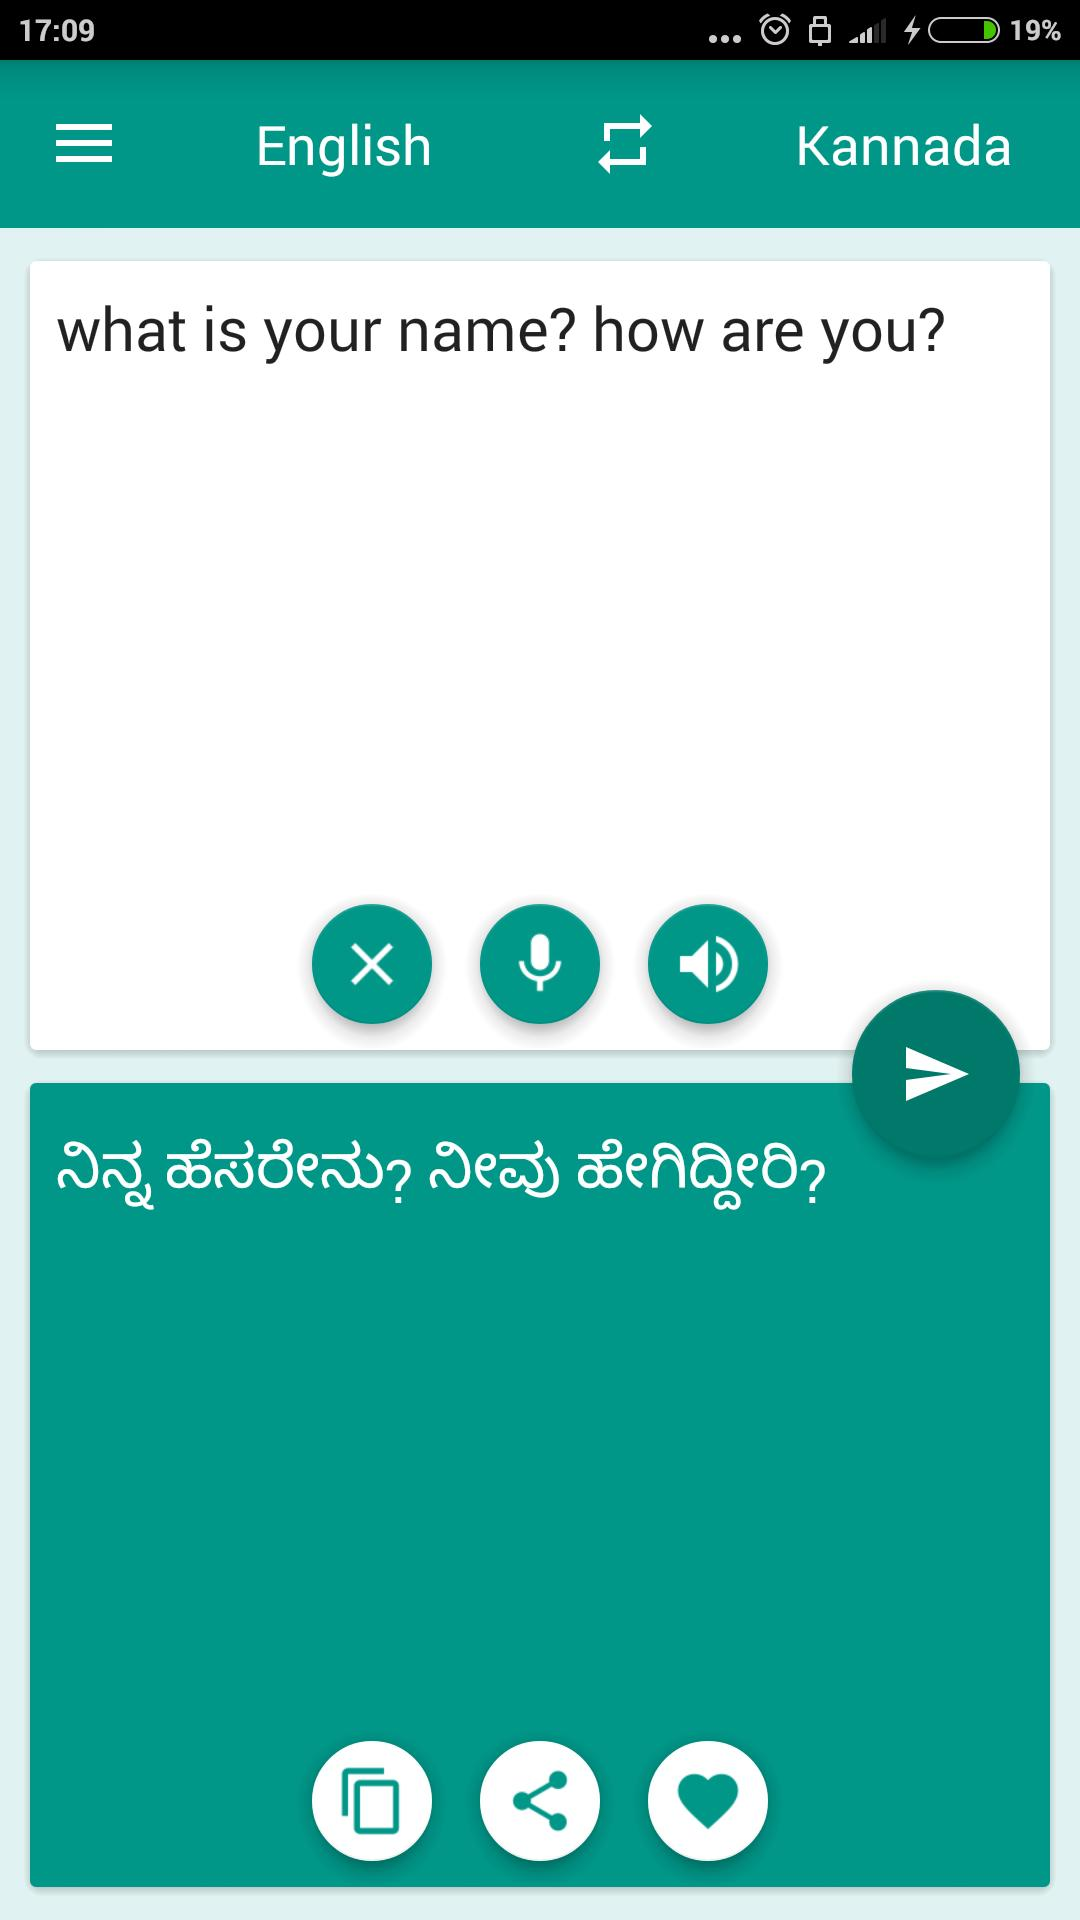 Kannada-English Translator for Android - APK Download